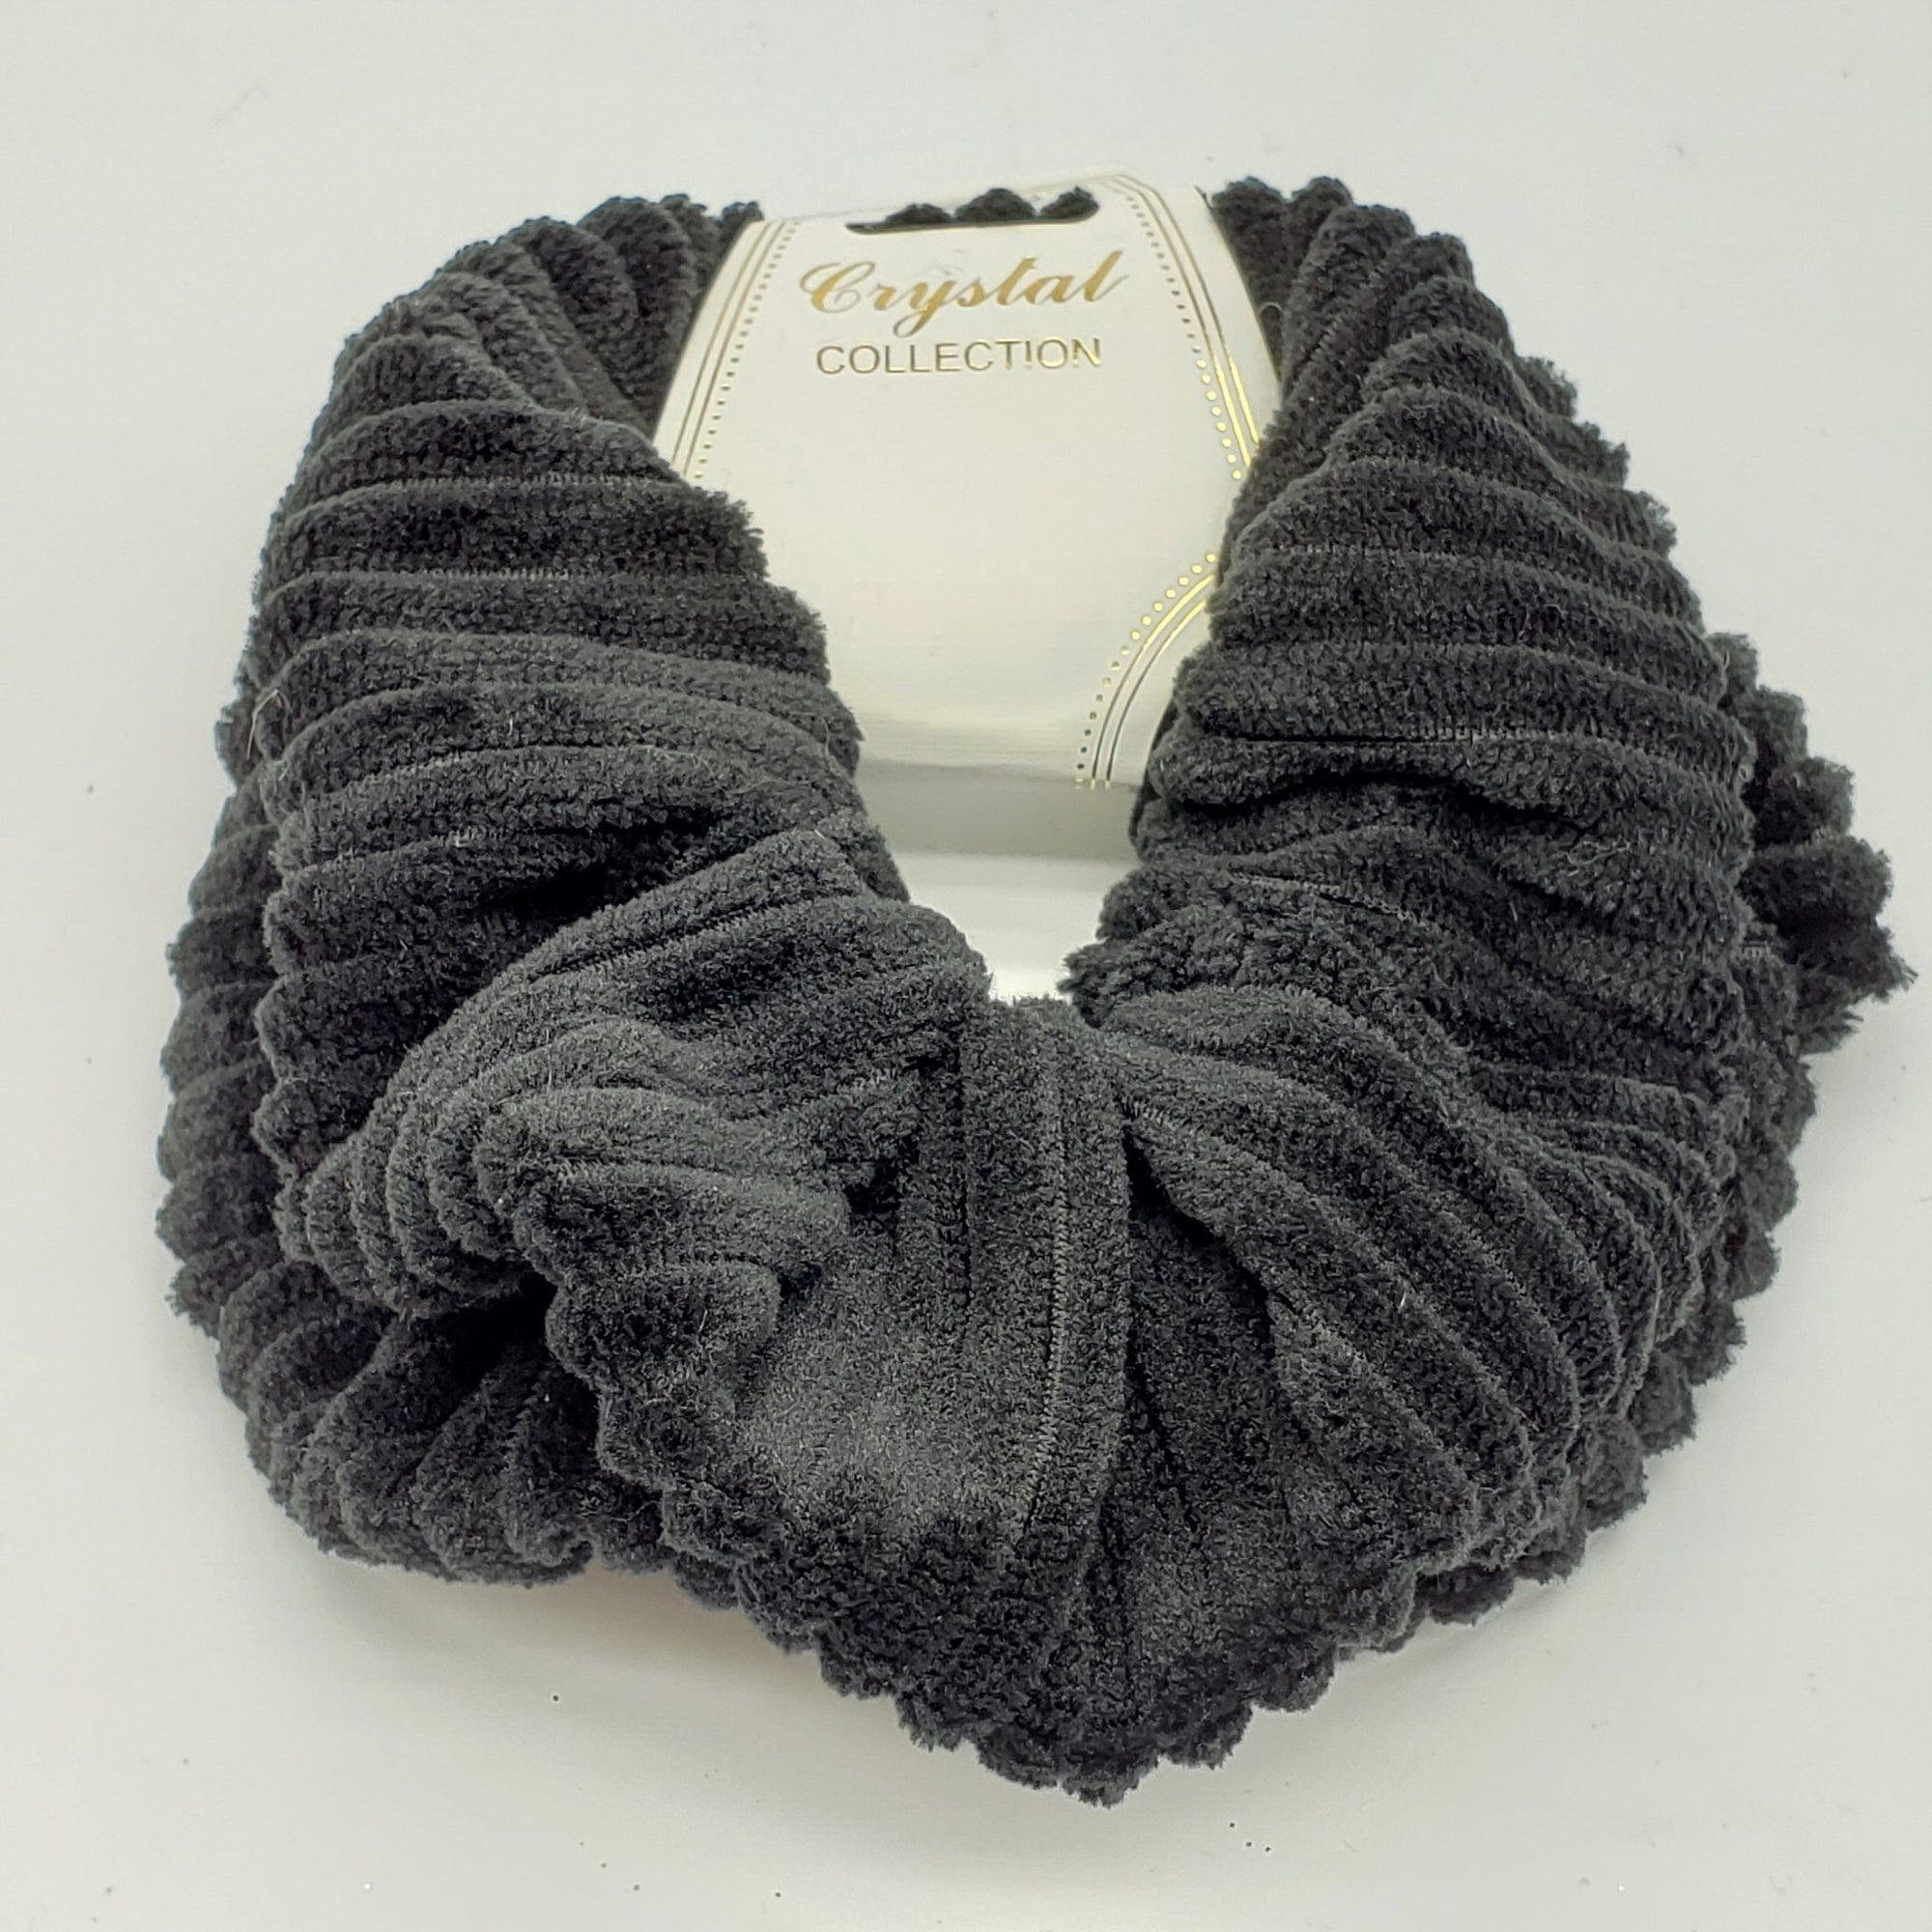 Crystal Collection Scrunchies #YHS2091B (24PC)